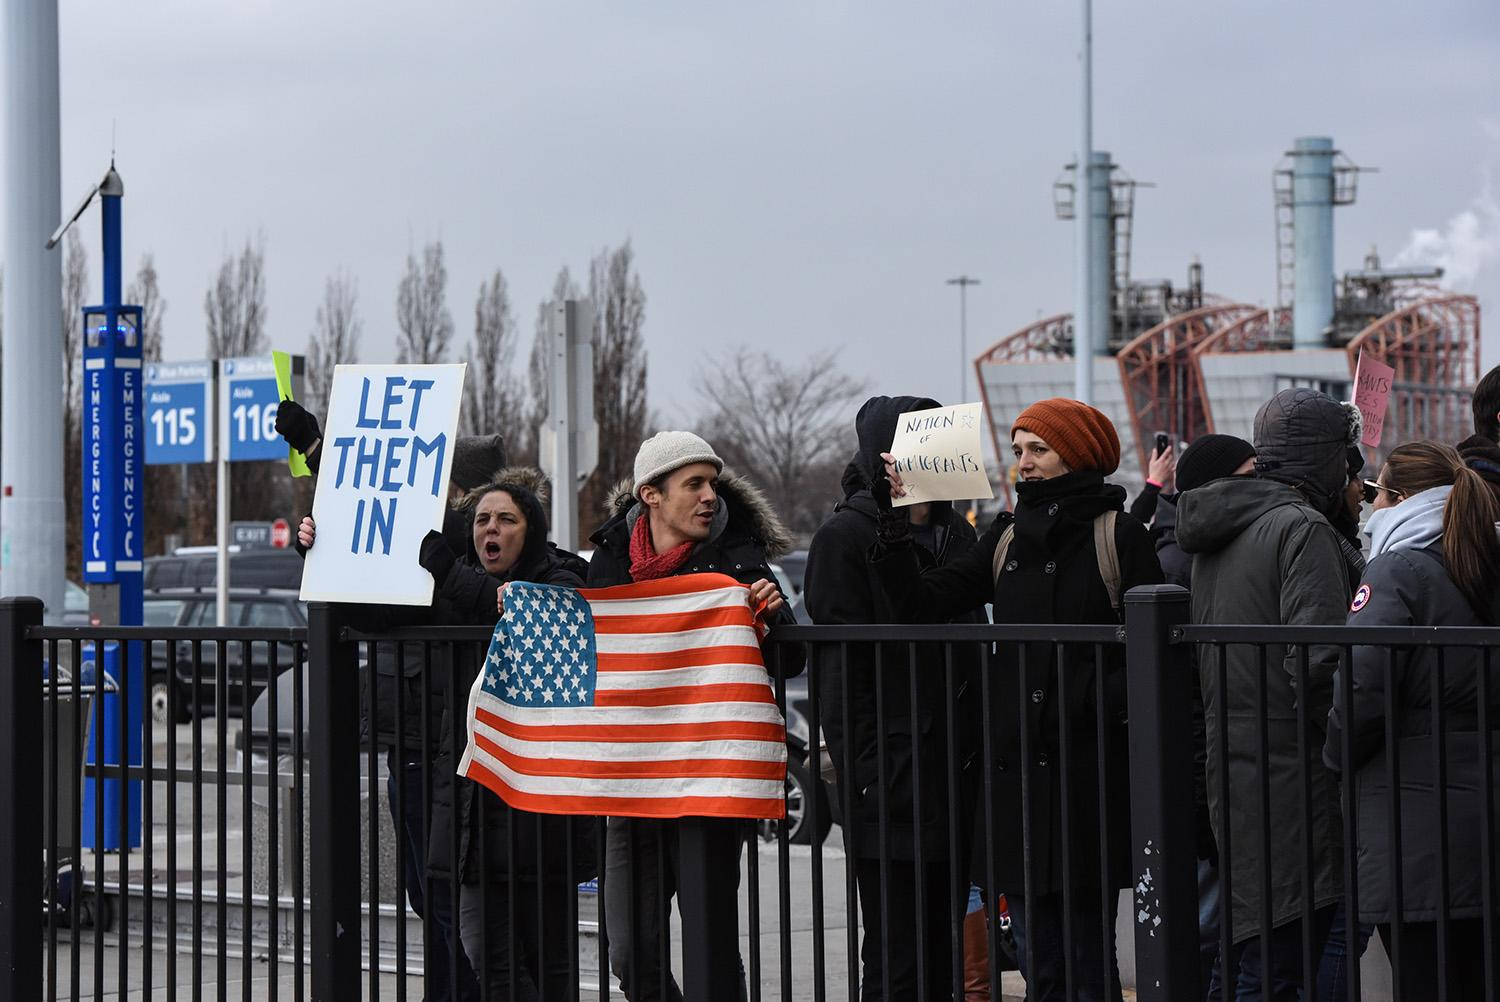 <p>Protestors rally during a protest against the Muslim immigration ban at John F. Kennedy International Airport on January 28, 2017 in New York City. (Photo: Stephanie Keith/Getty Images) </p>